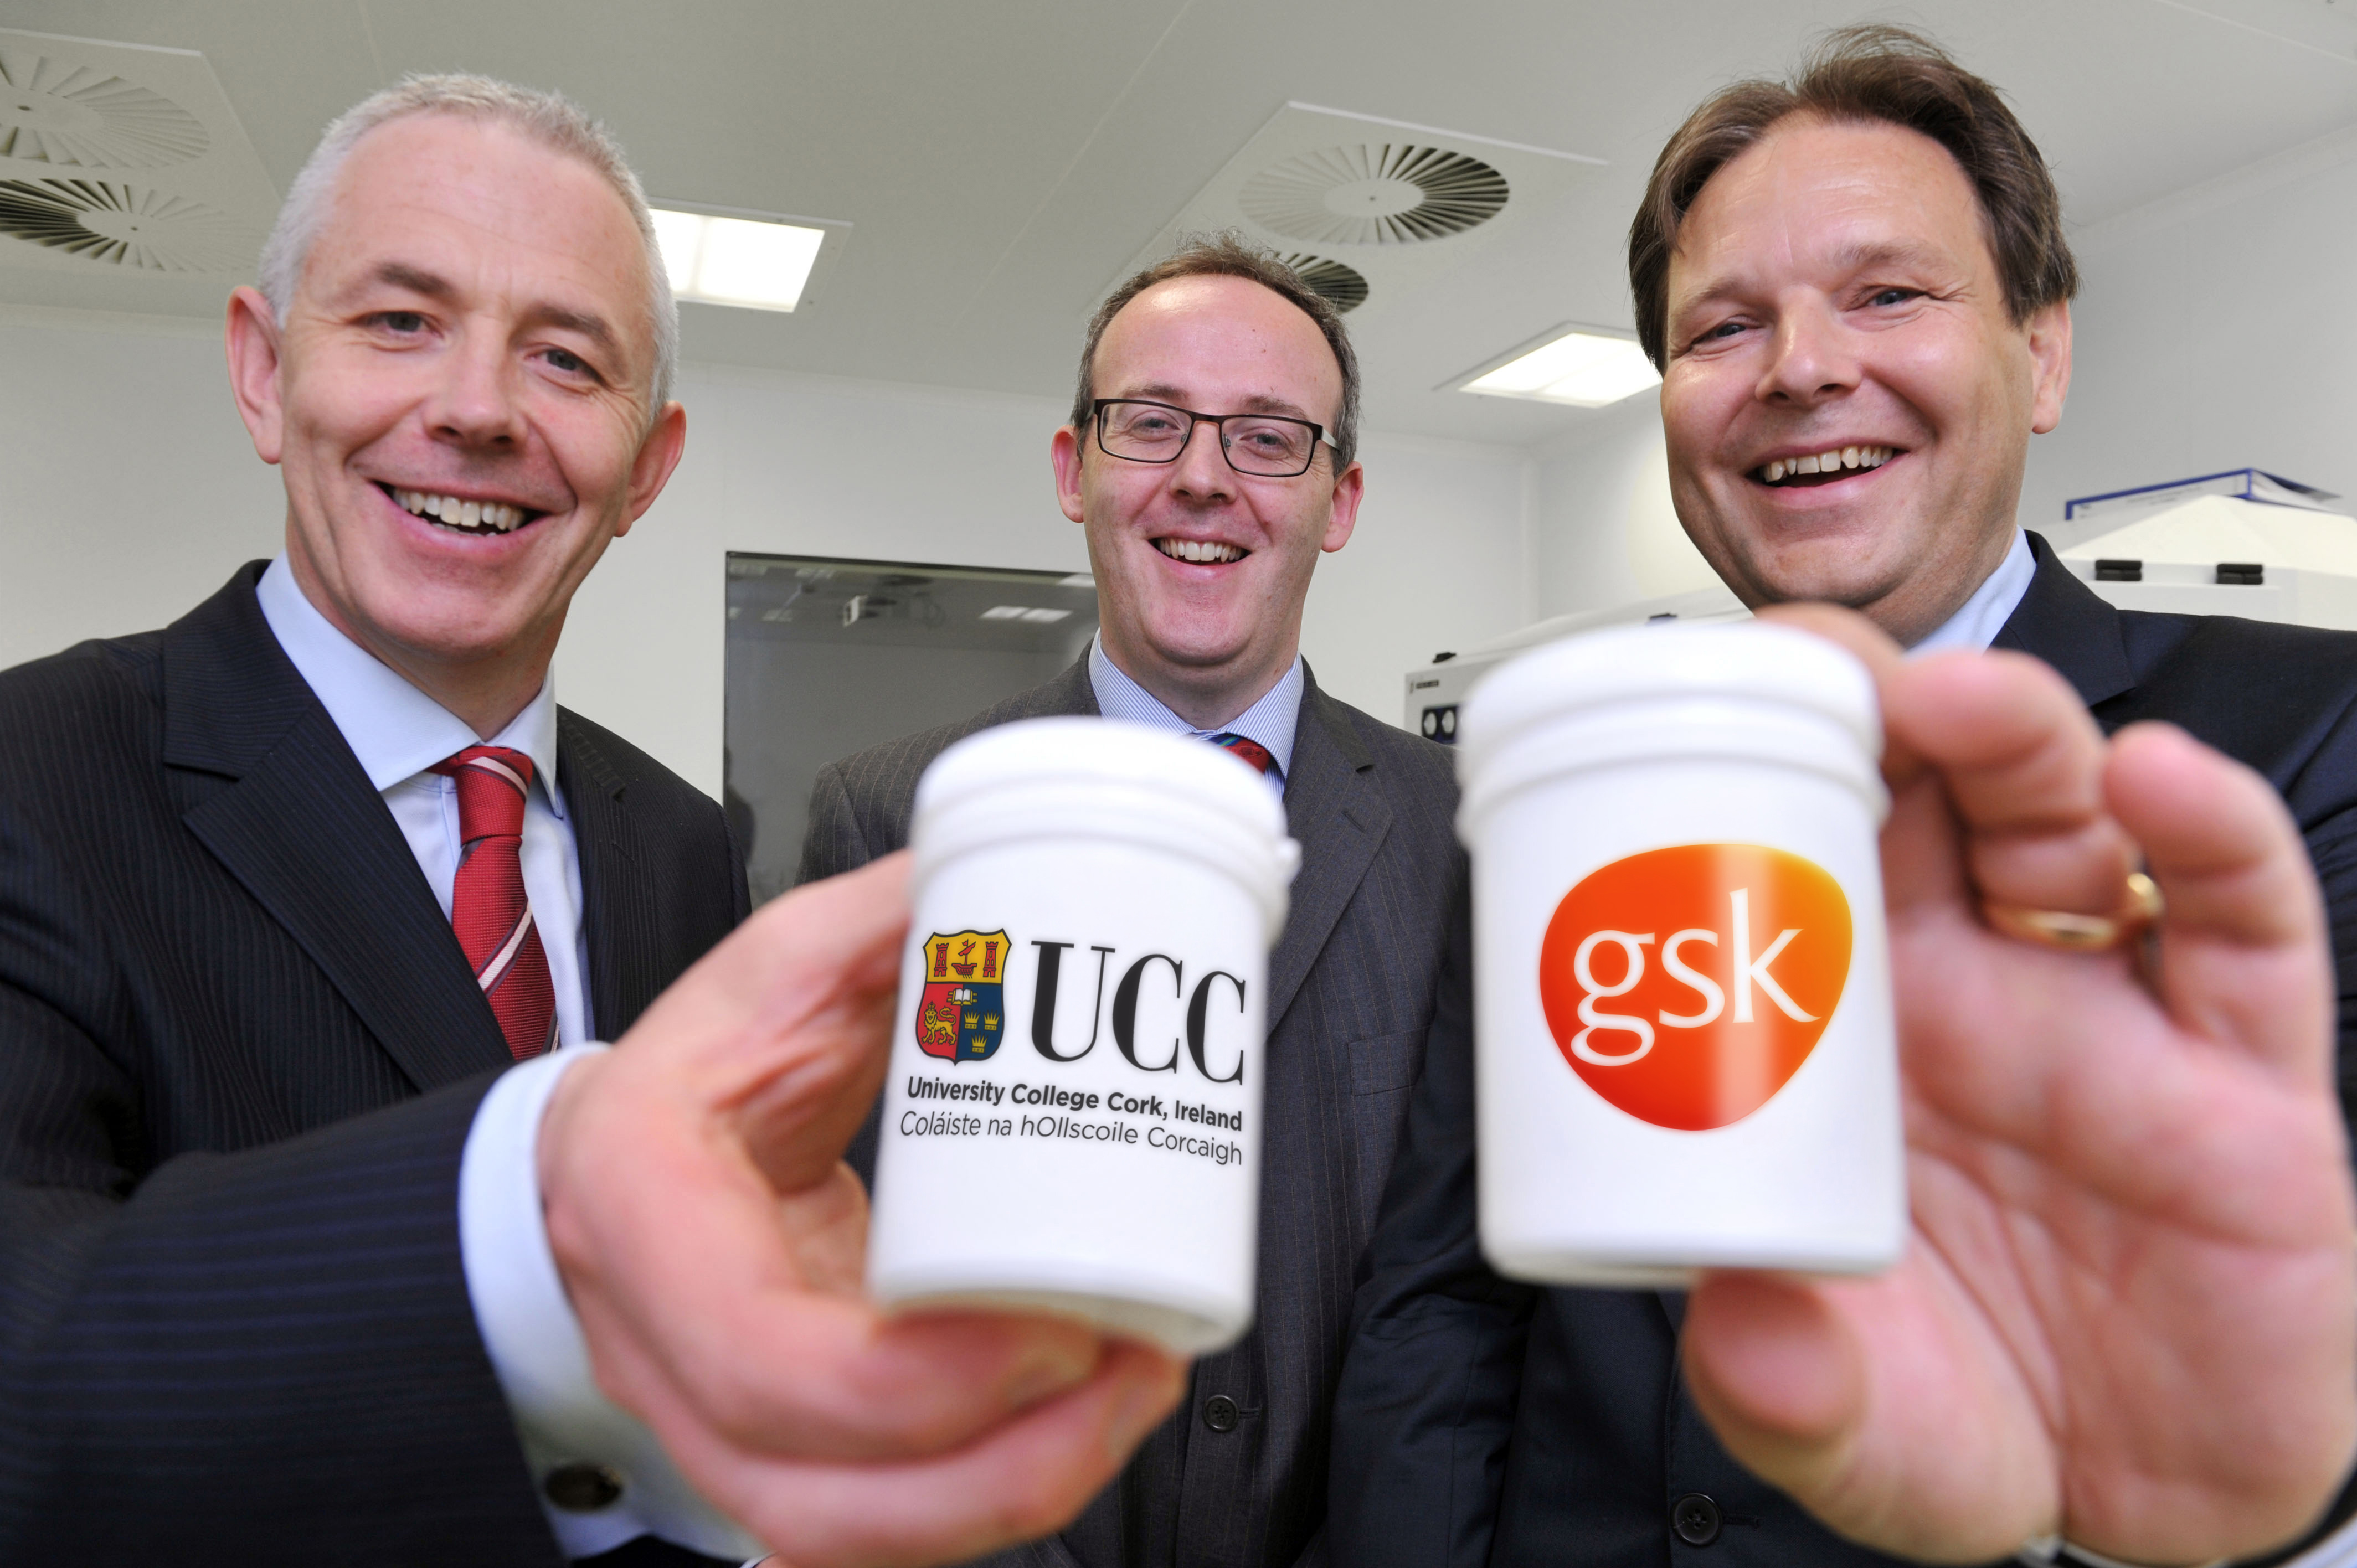 UCC and GSK Corporate Launch